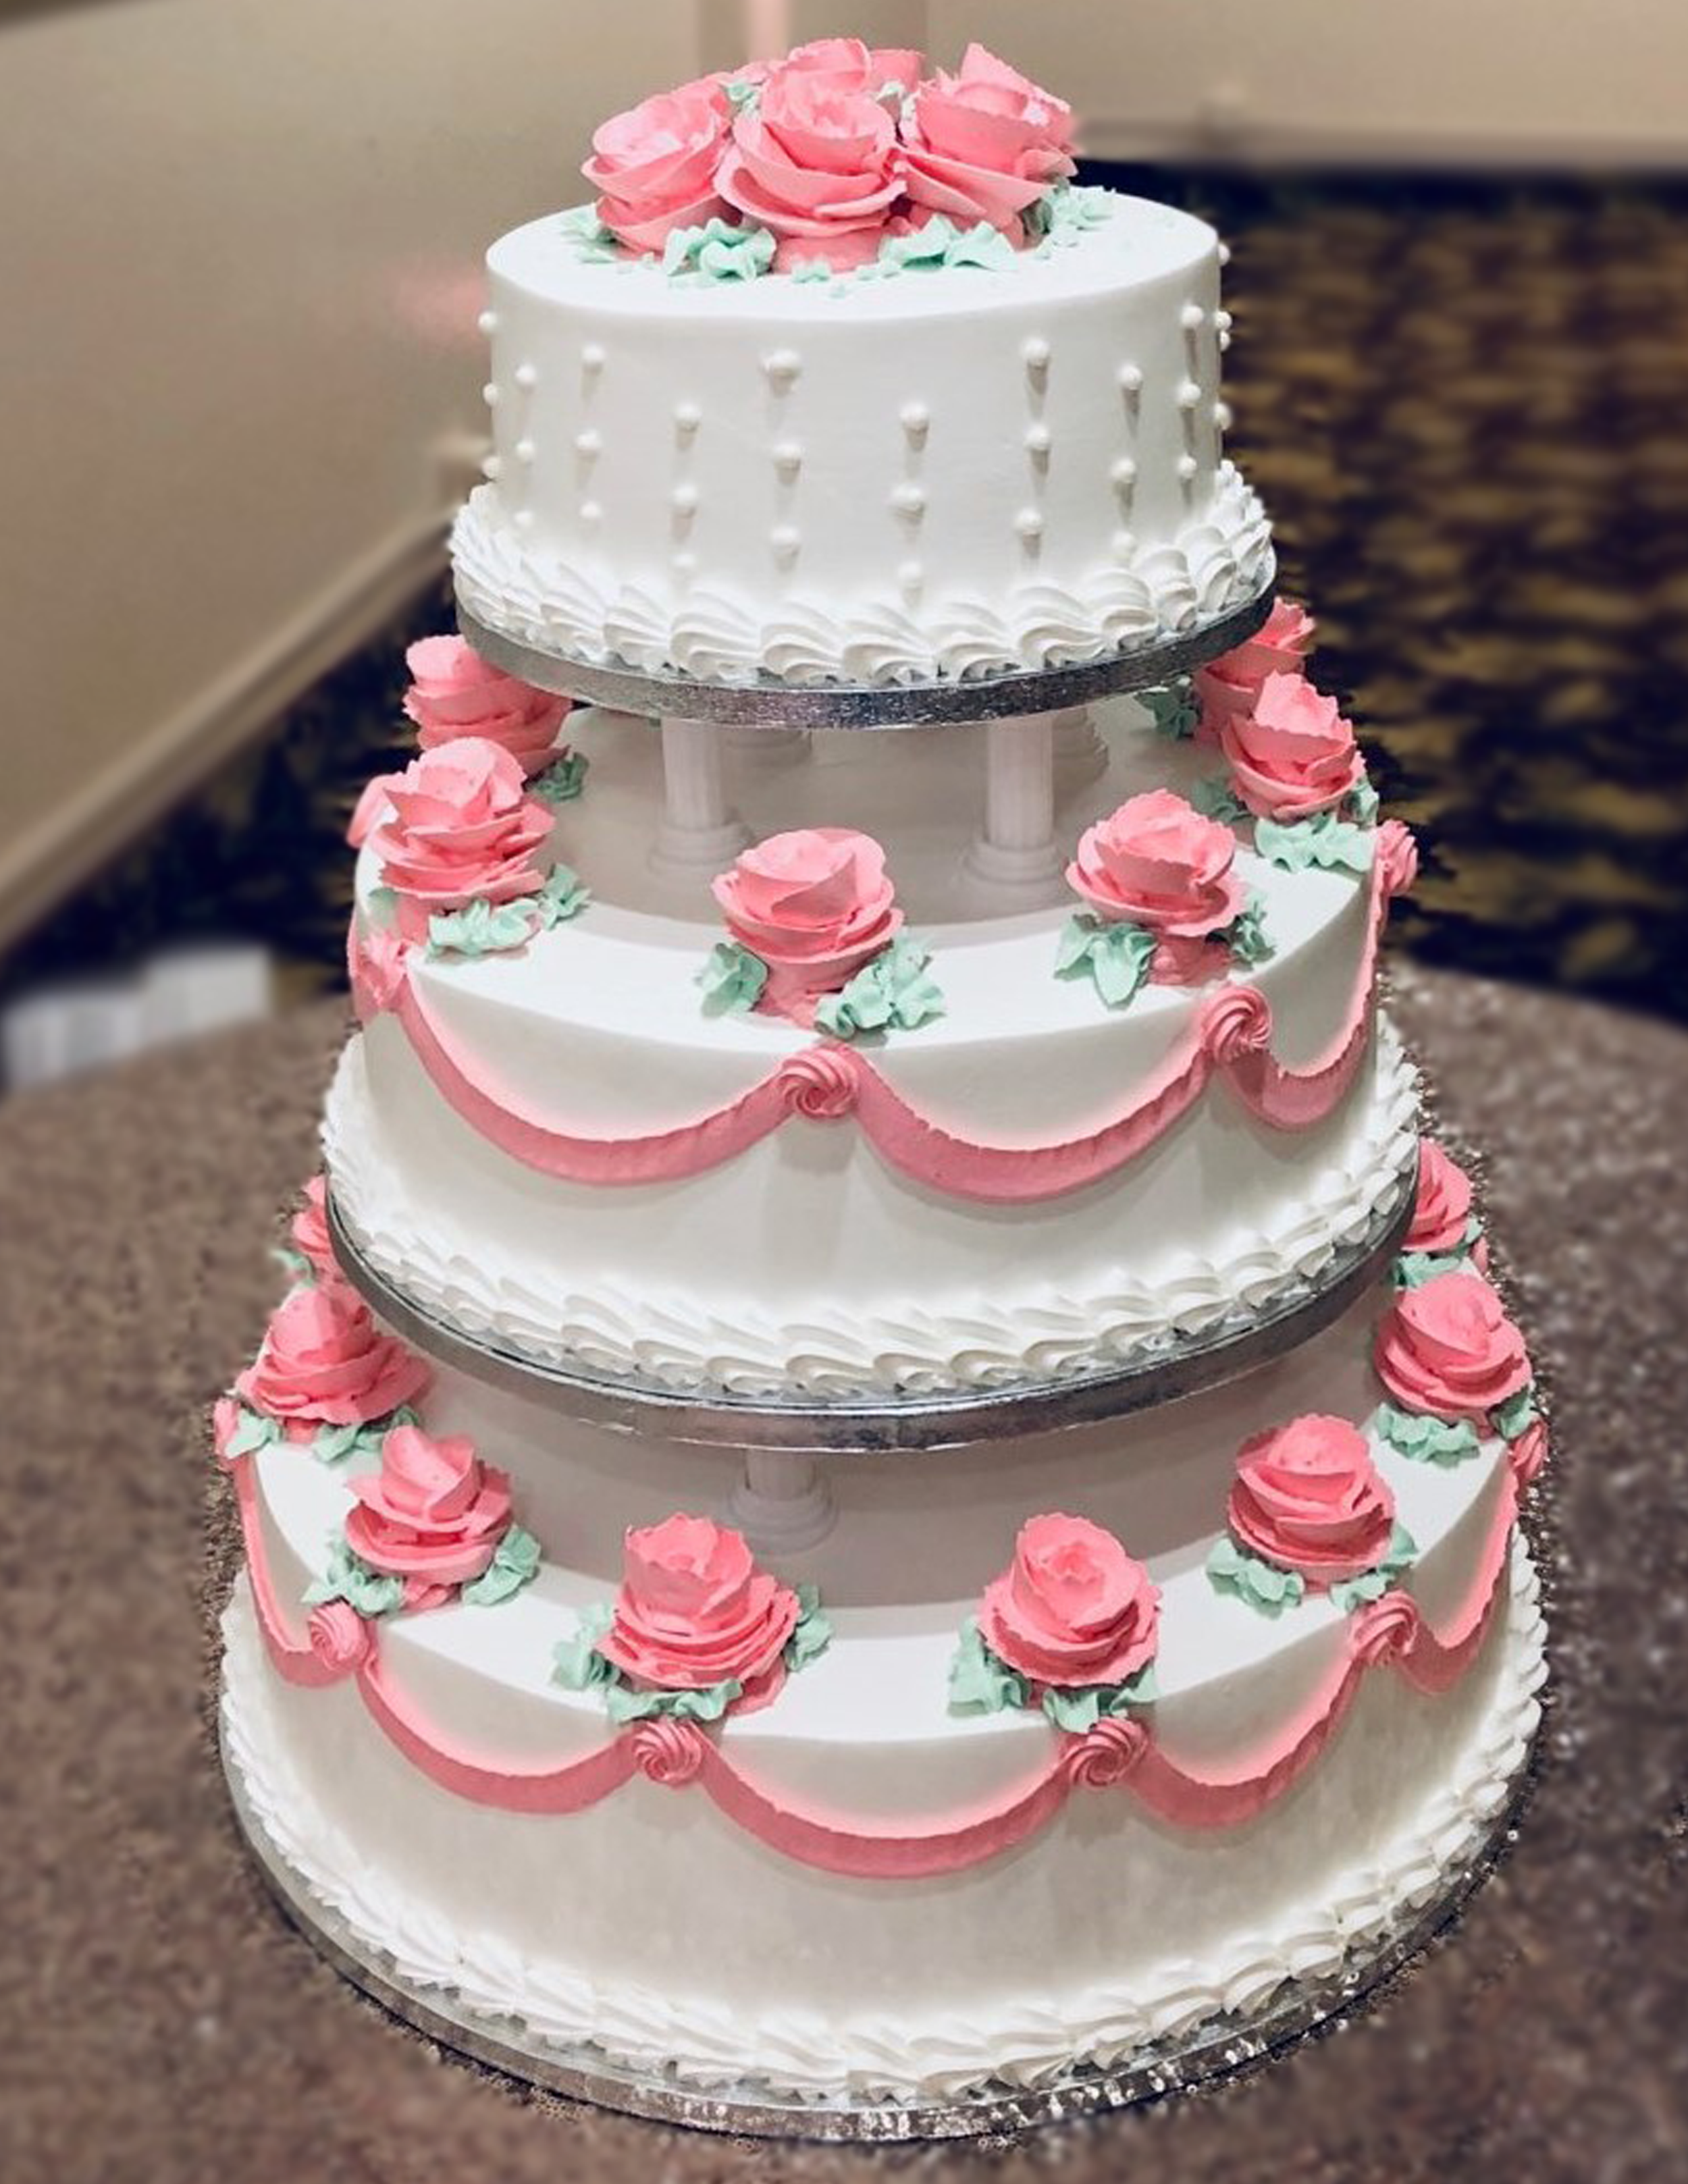 W8 - 3 layered cake decorated with butter cream pink roses & garland